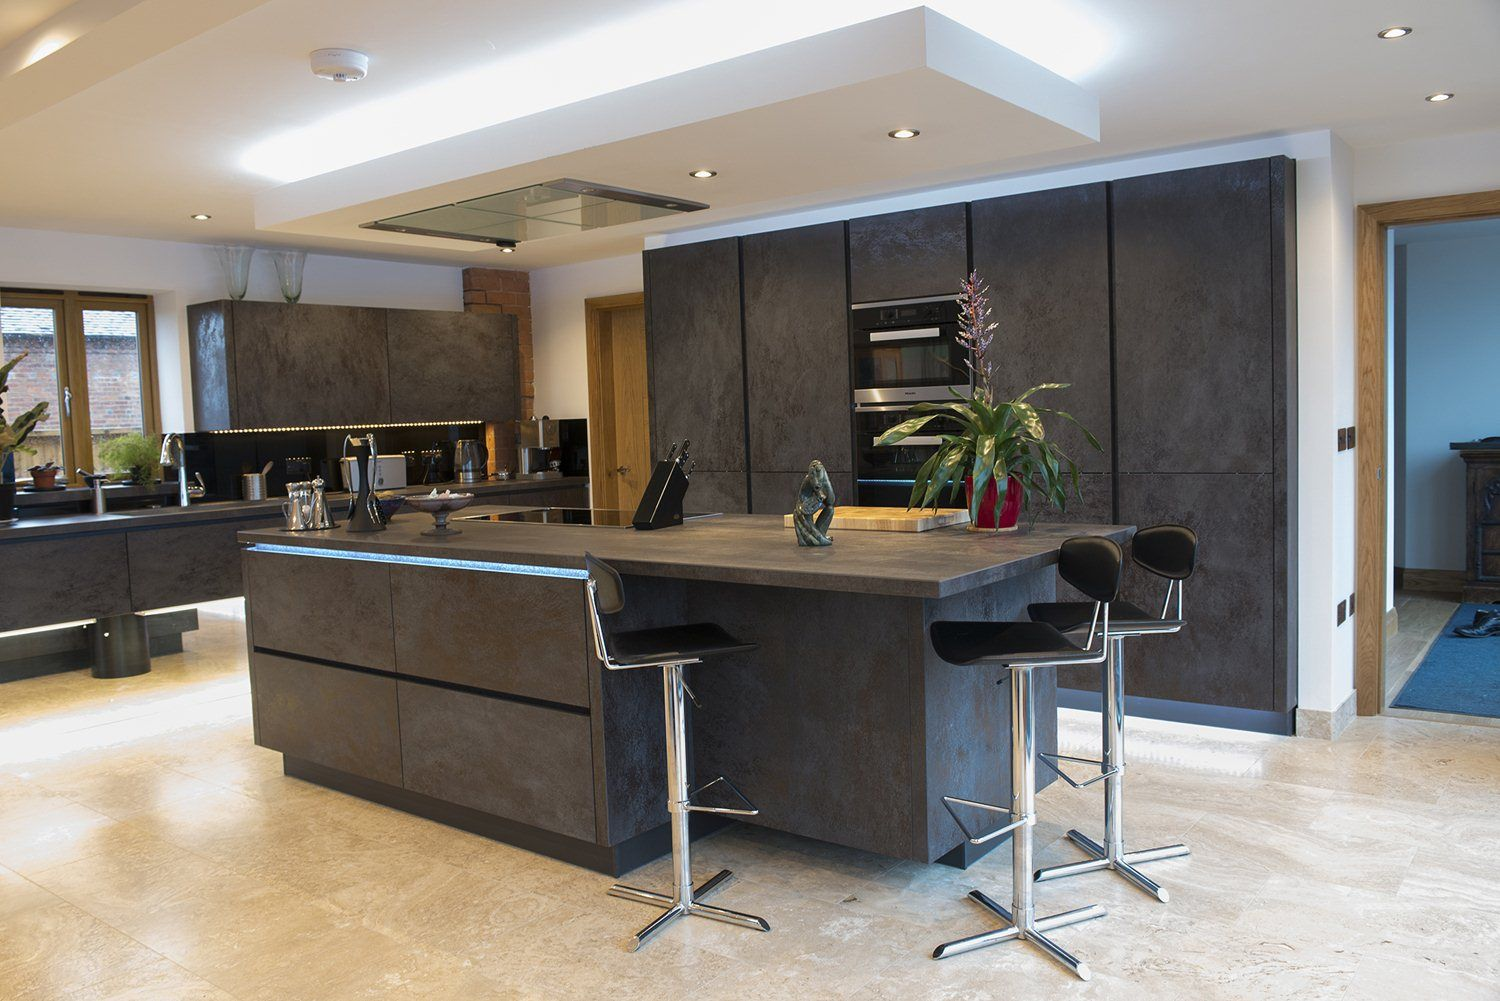 Superieur Kitchens · Princess Design Customer Fedouloff